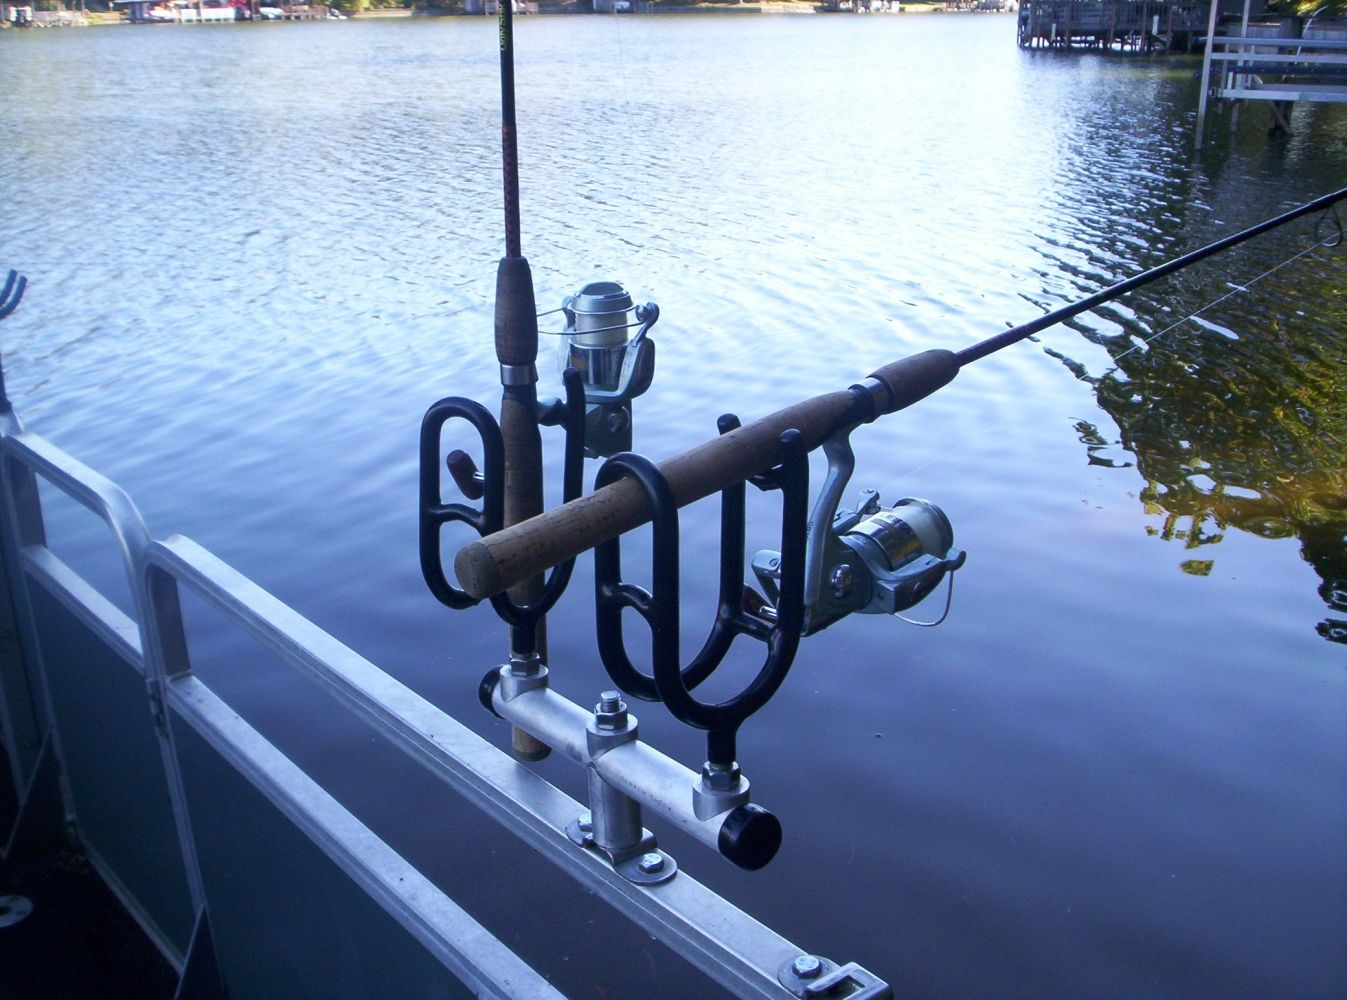 Beaver creek rod holder company boat fishing rod holders for Steel fishing rod